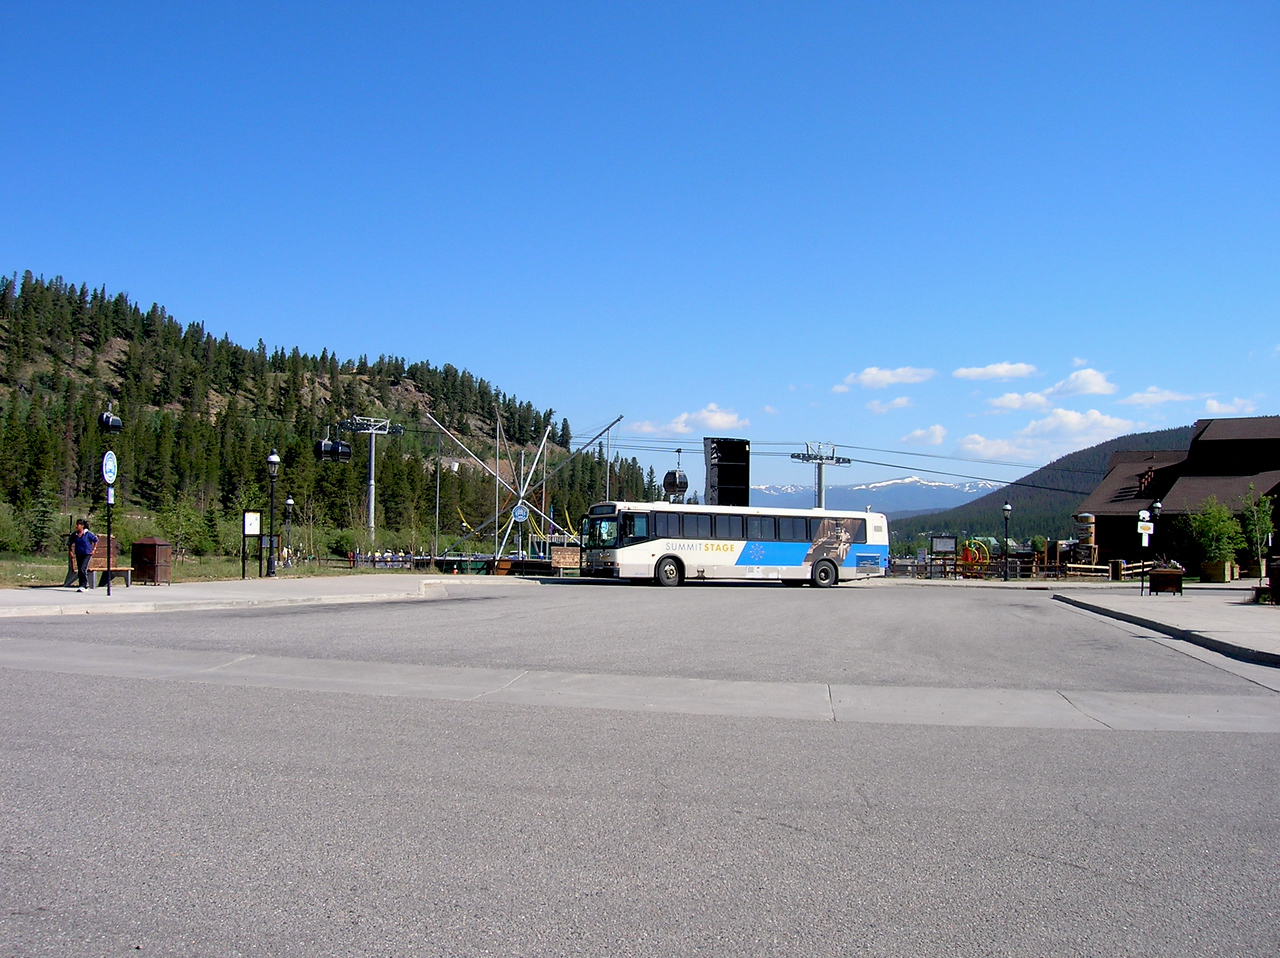 Days past: bus station in Breckenridge.